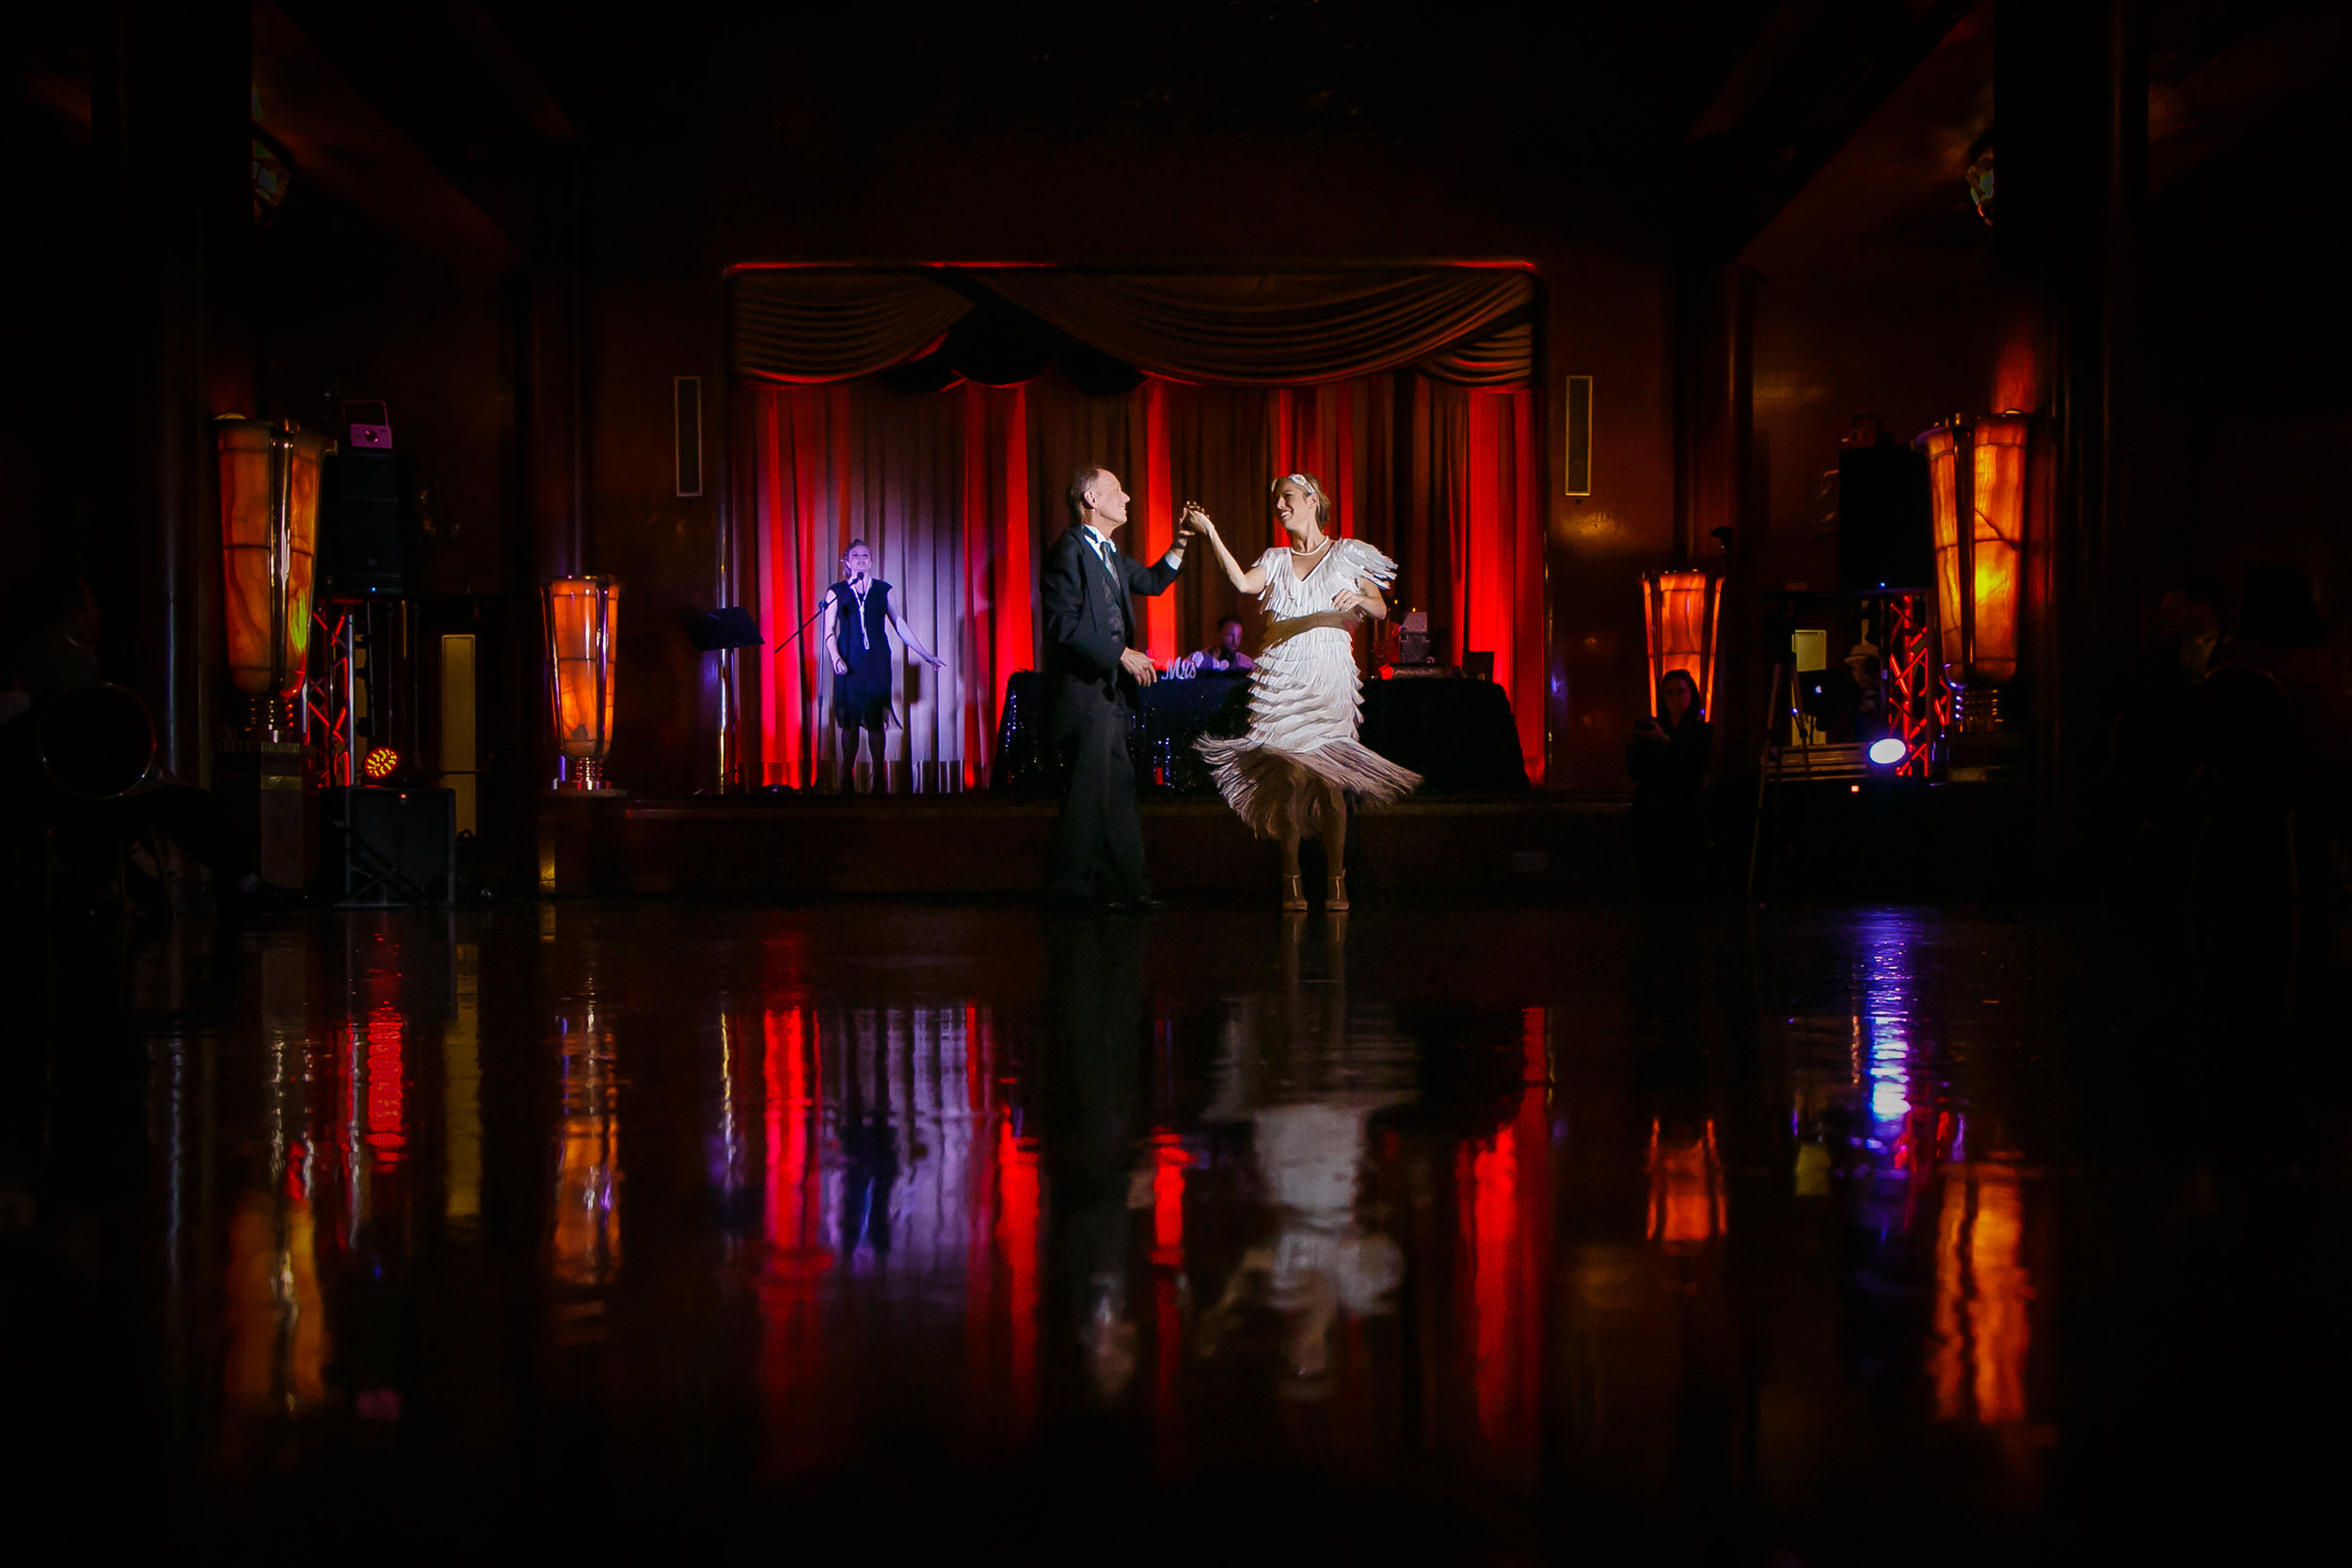 WEDDING RECEPTION AT THE QUEEN MARY IN LONG BEACH, CALIFORNIA